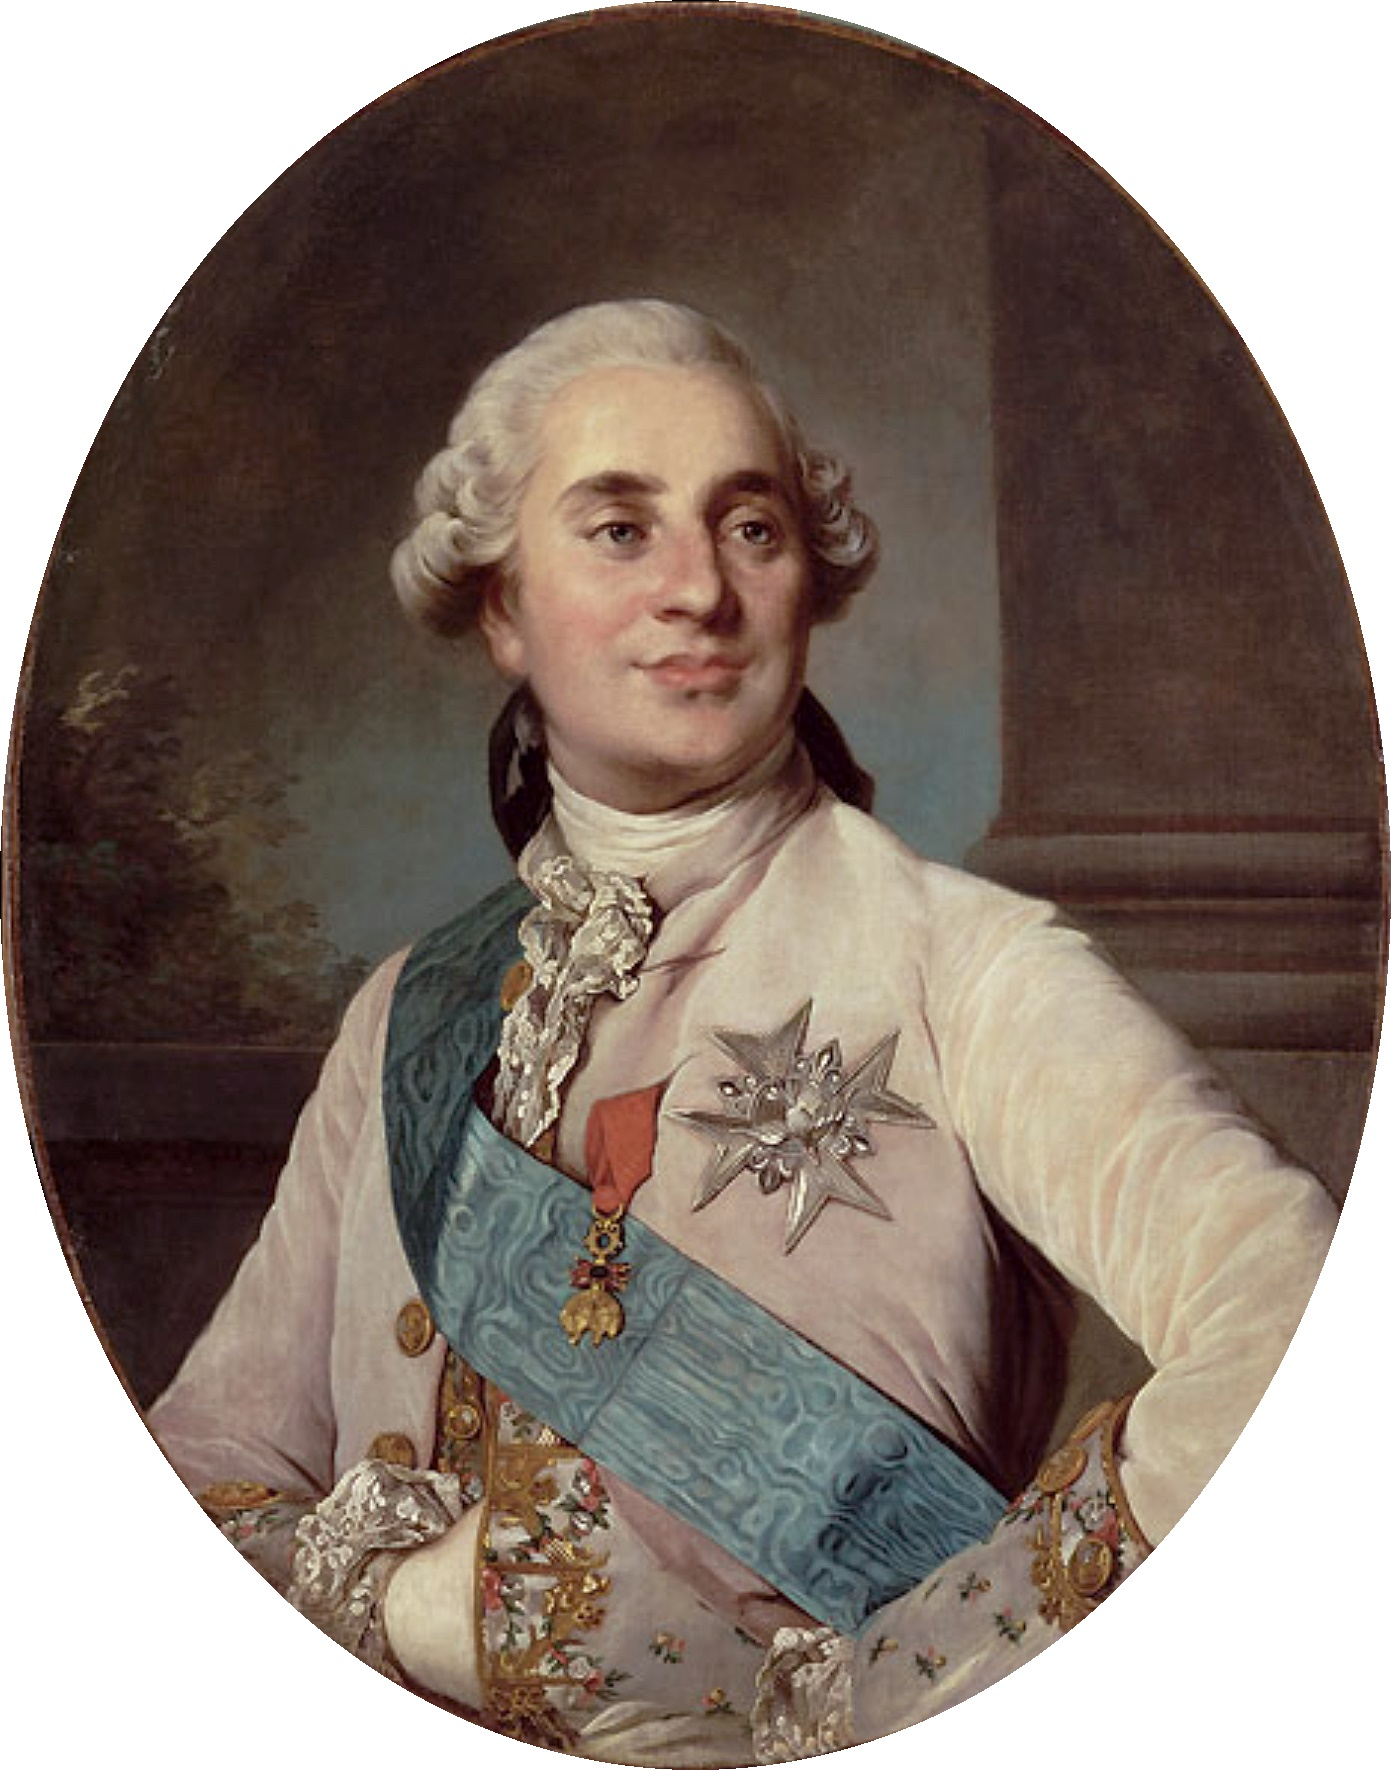 Fichier:Duplessis - Louis XVI of France, oval, Versailles.jpg — Wikipédia